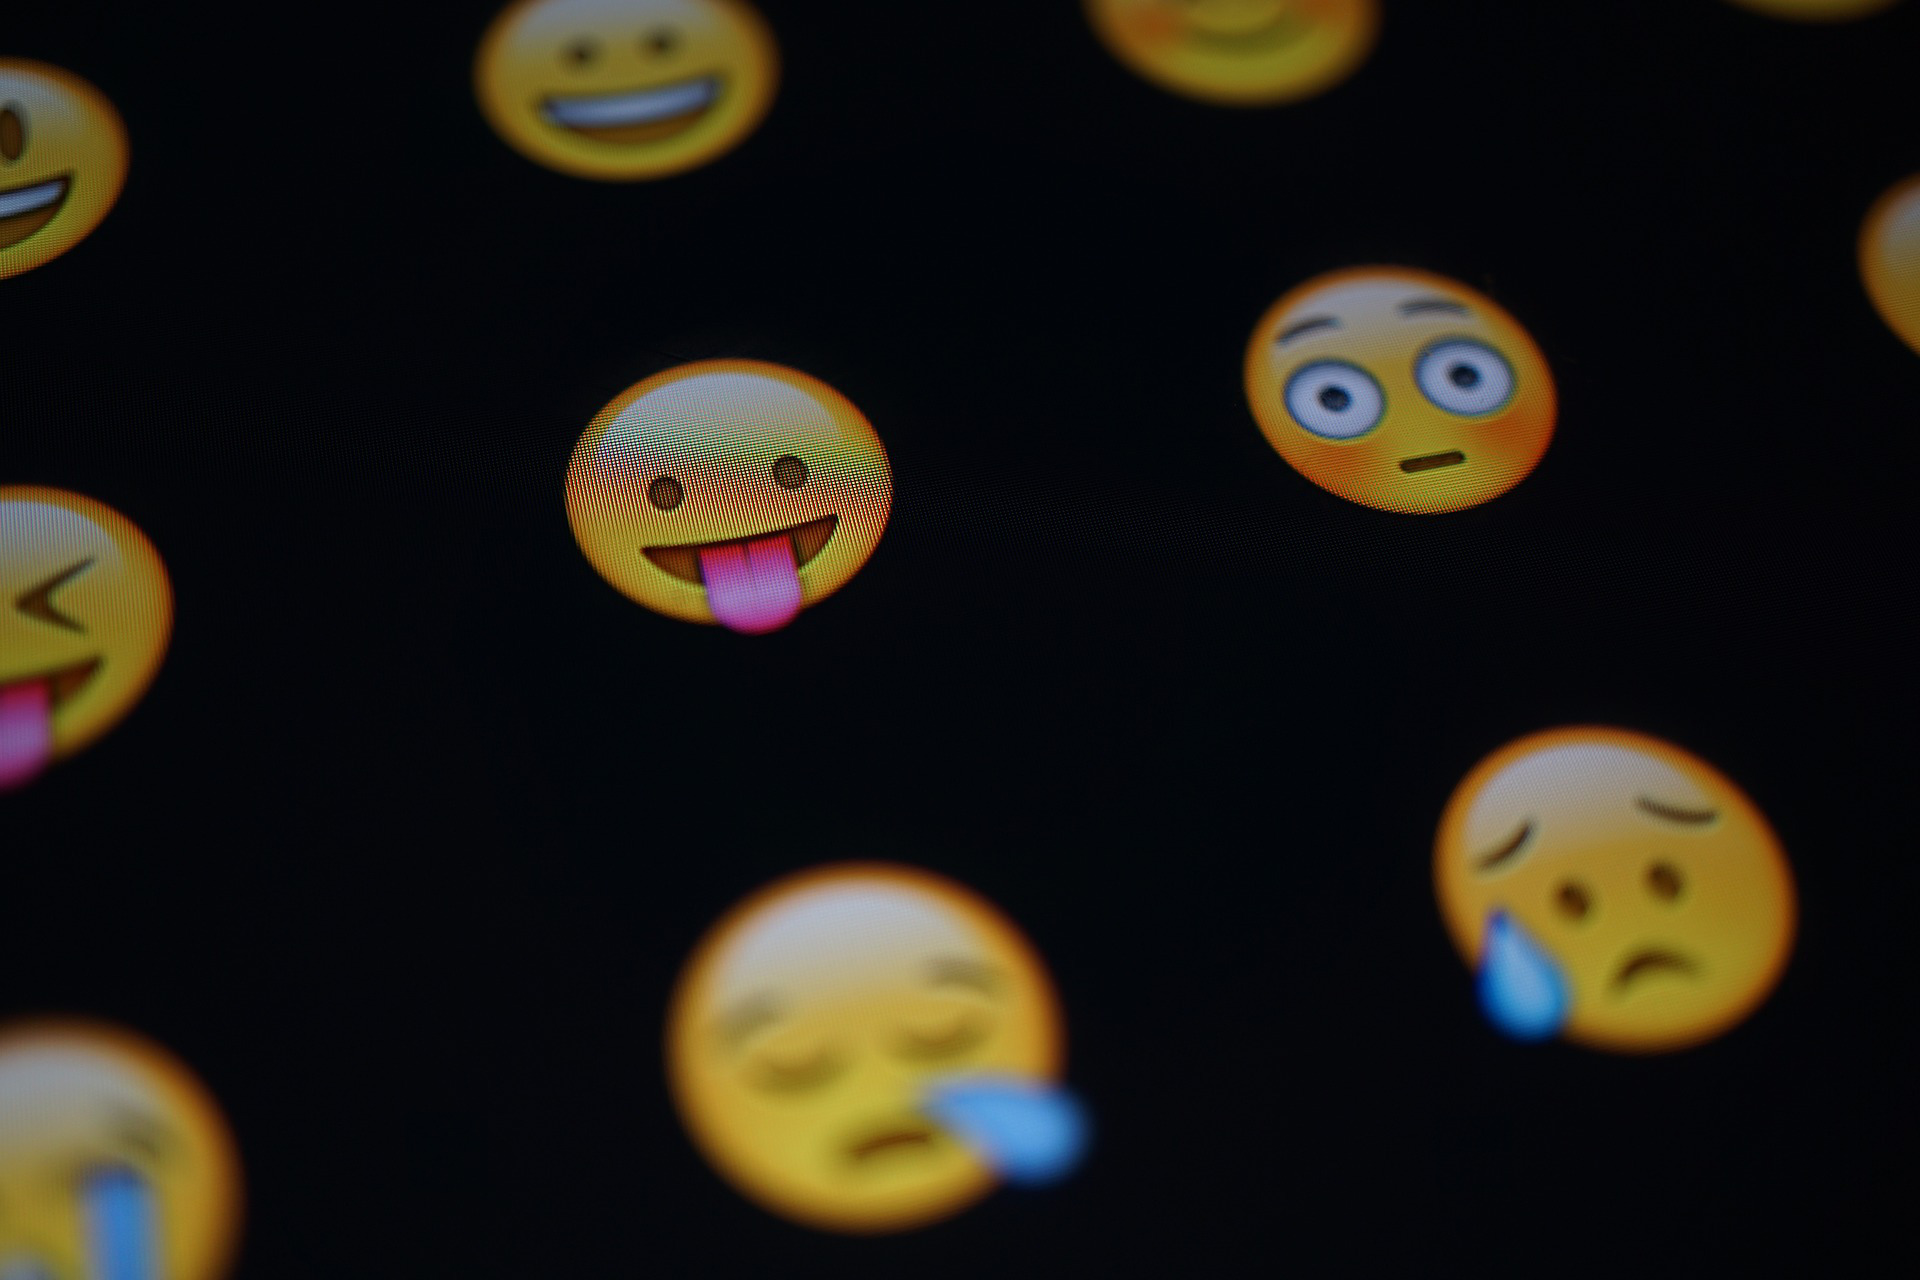 A selection of emojis is displayed on a cell phone